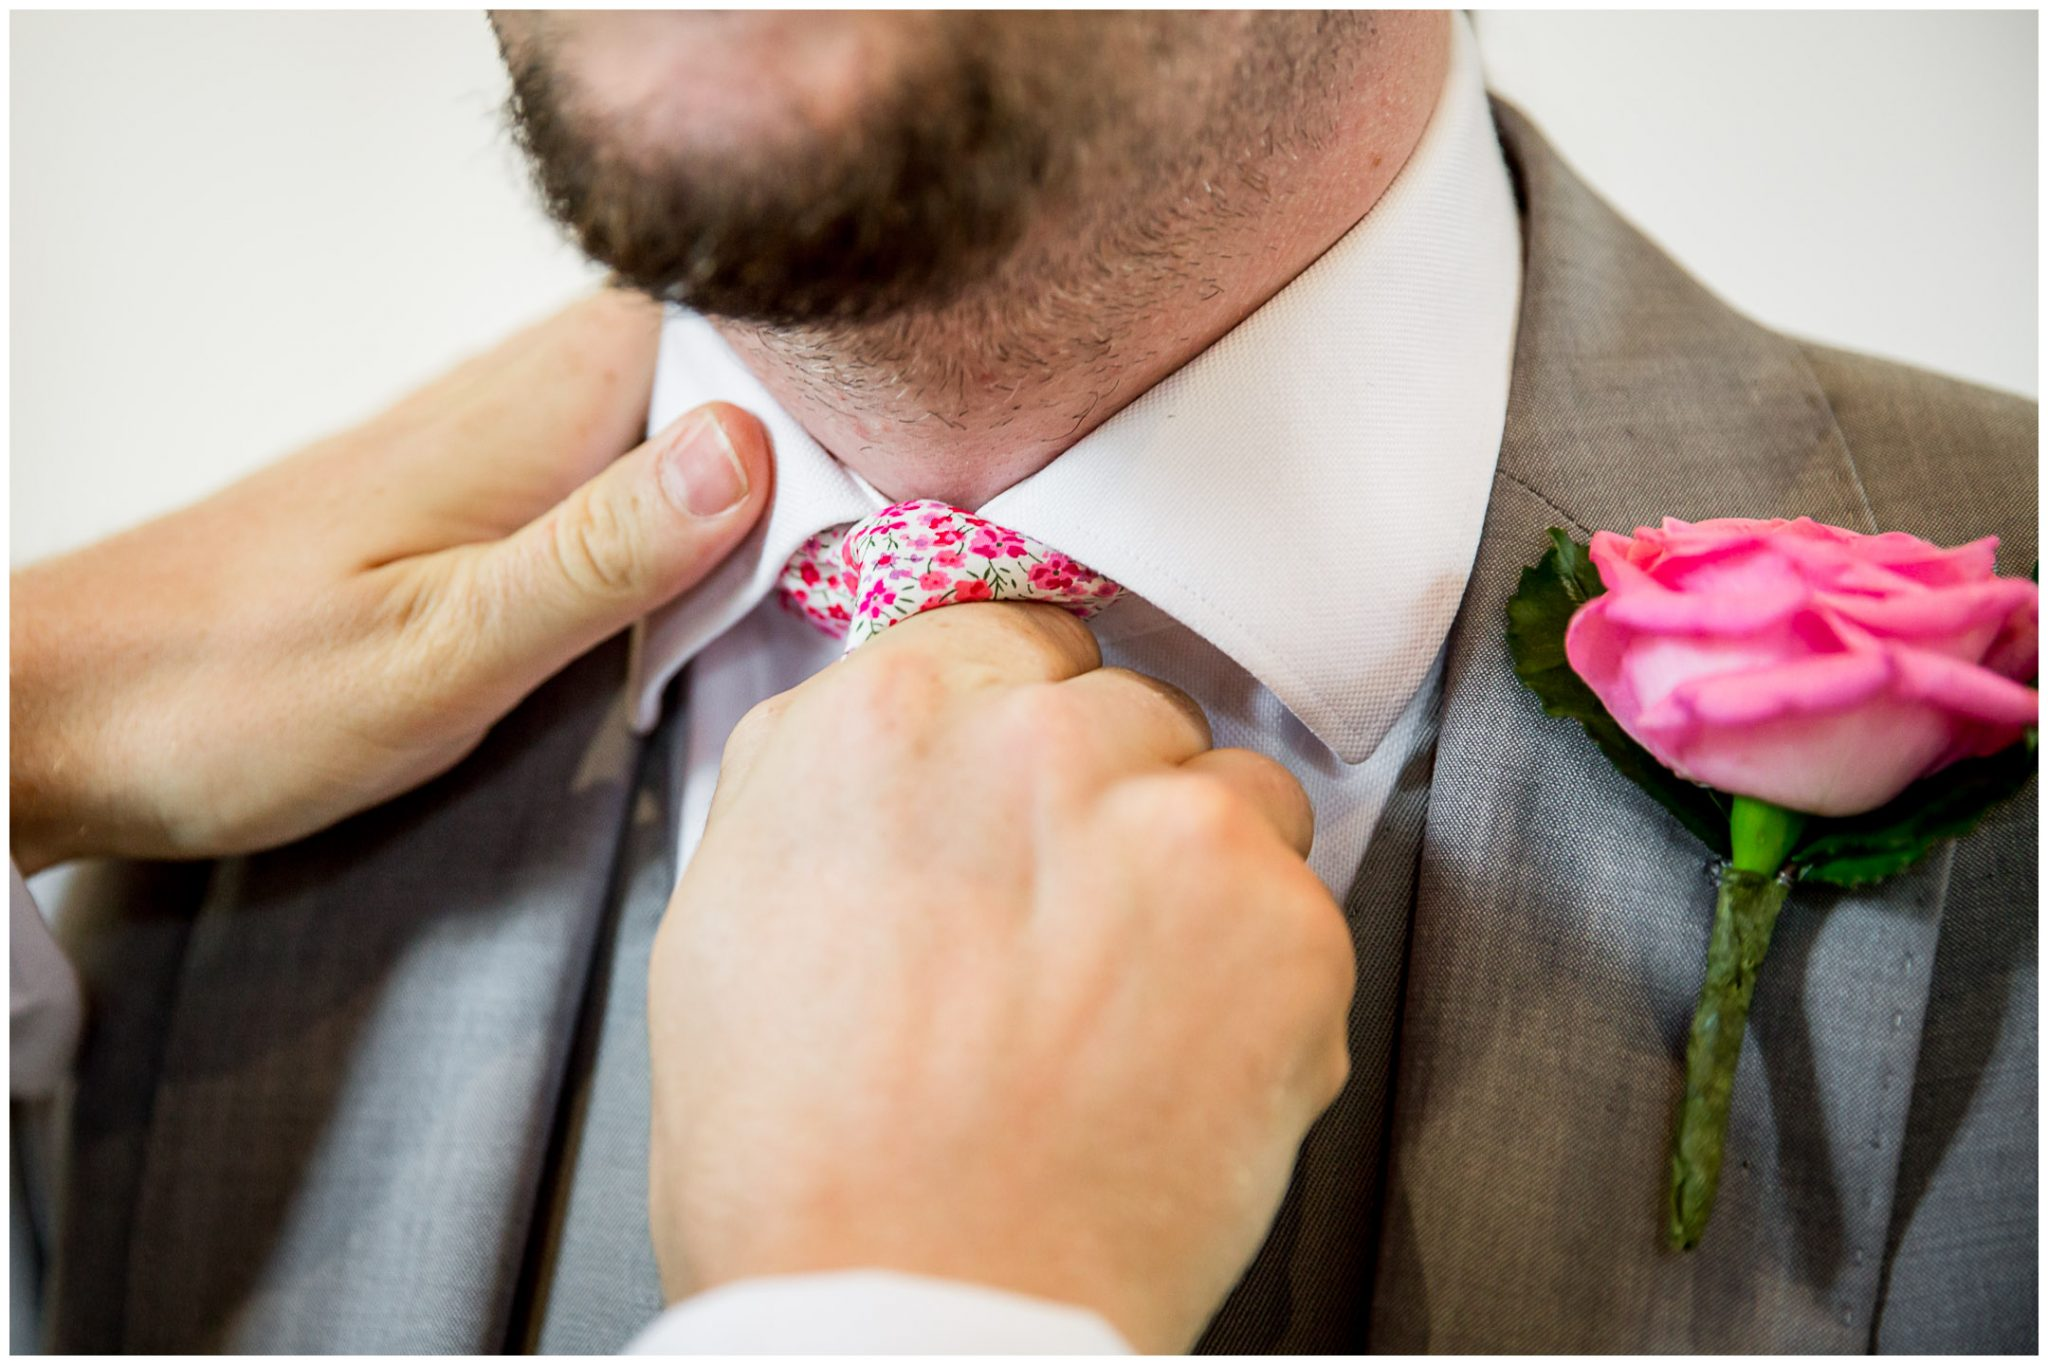 The best man adjusts the groom's tie before the marriage ceremony begins